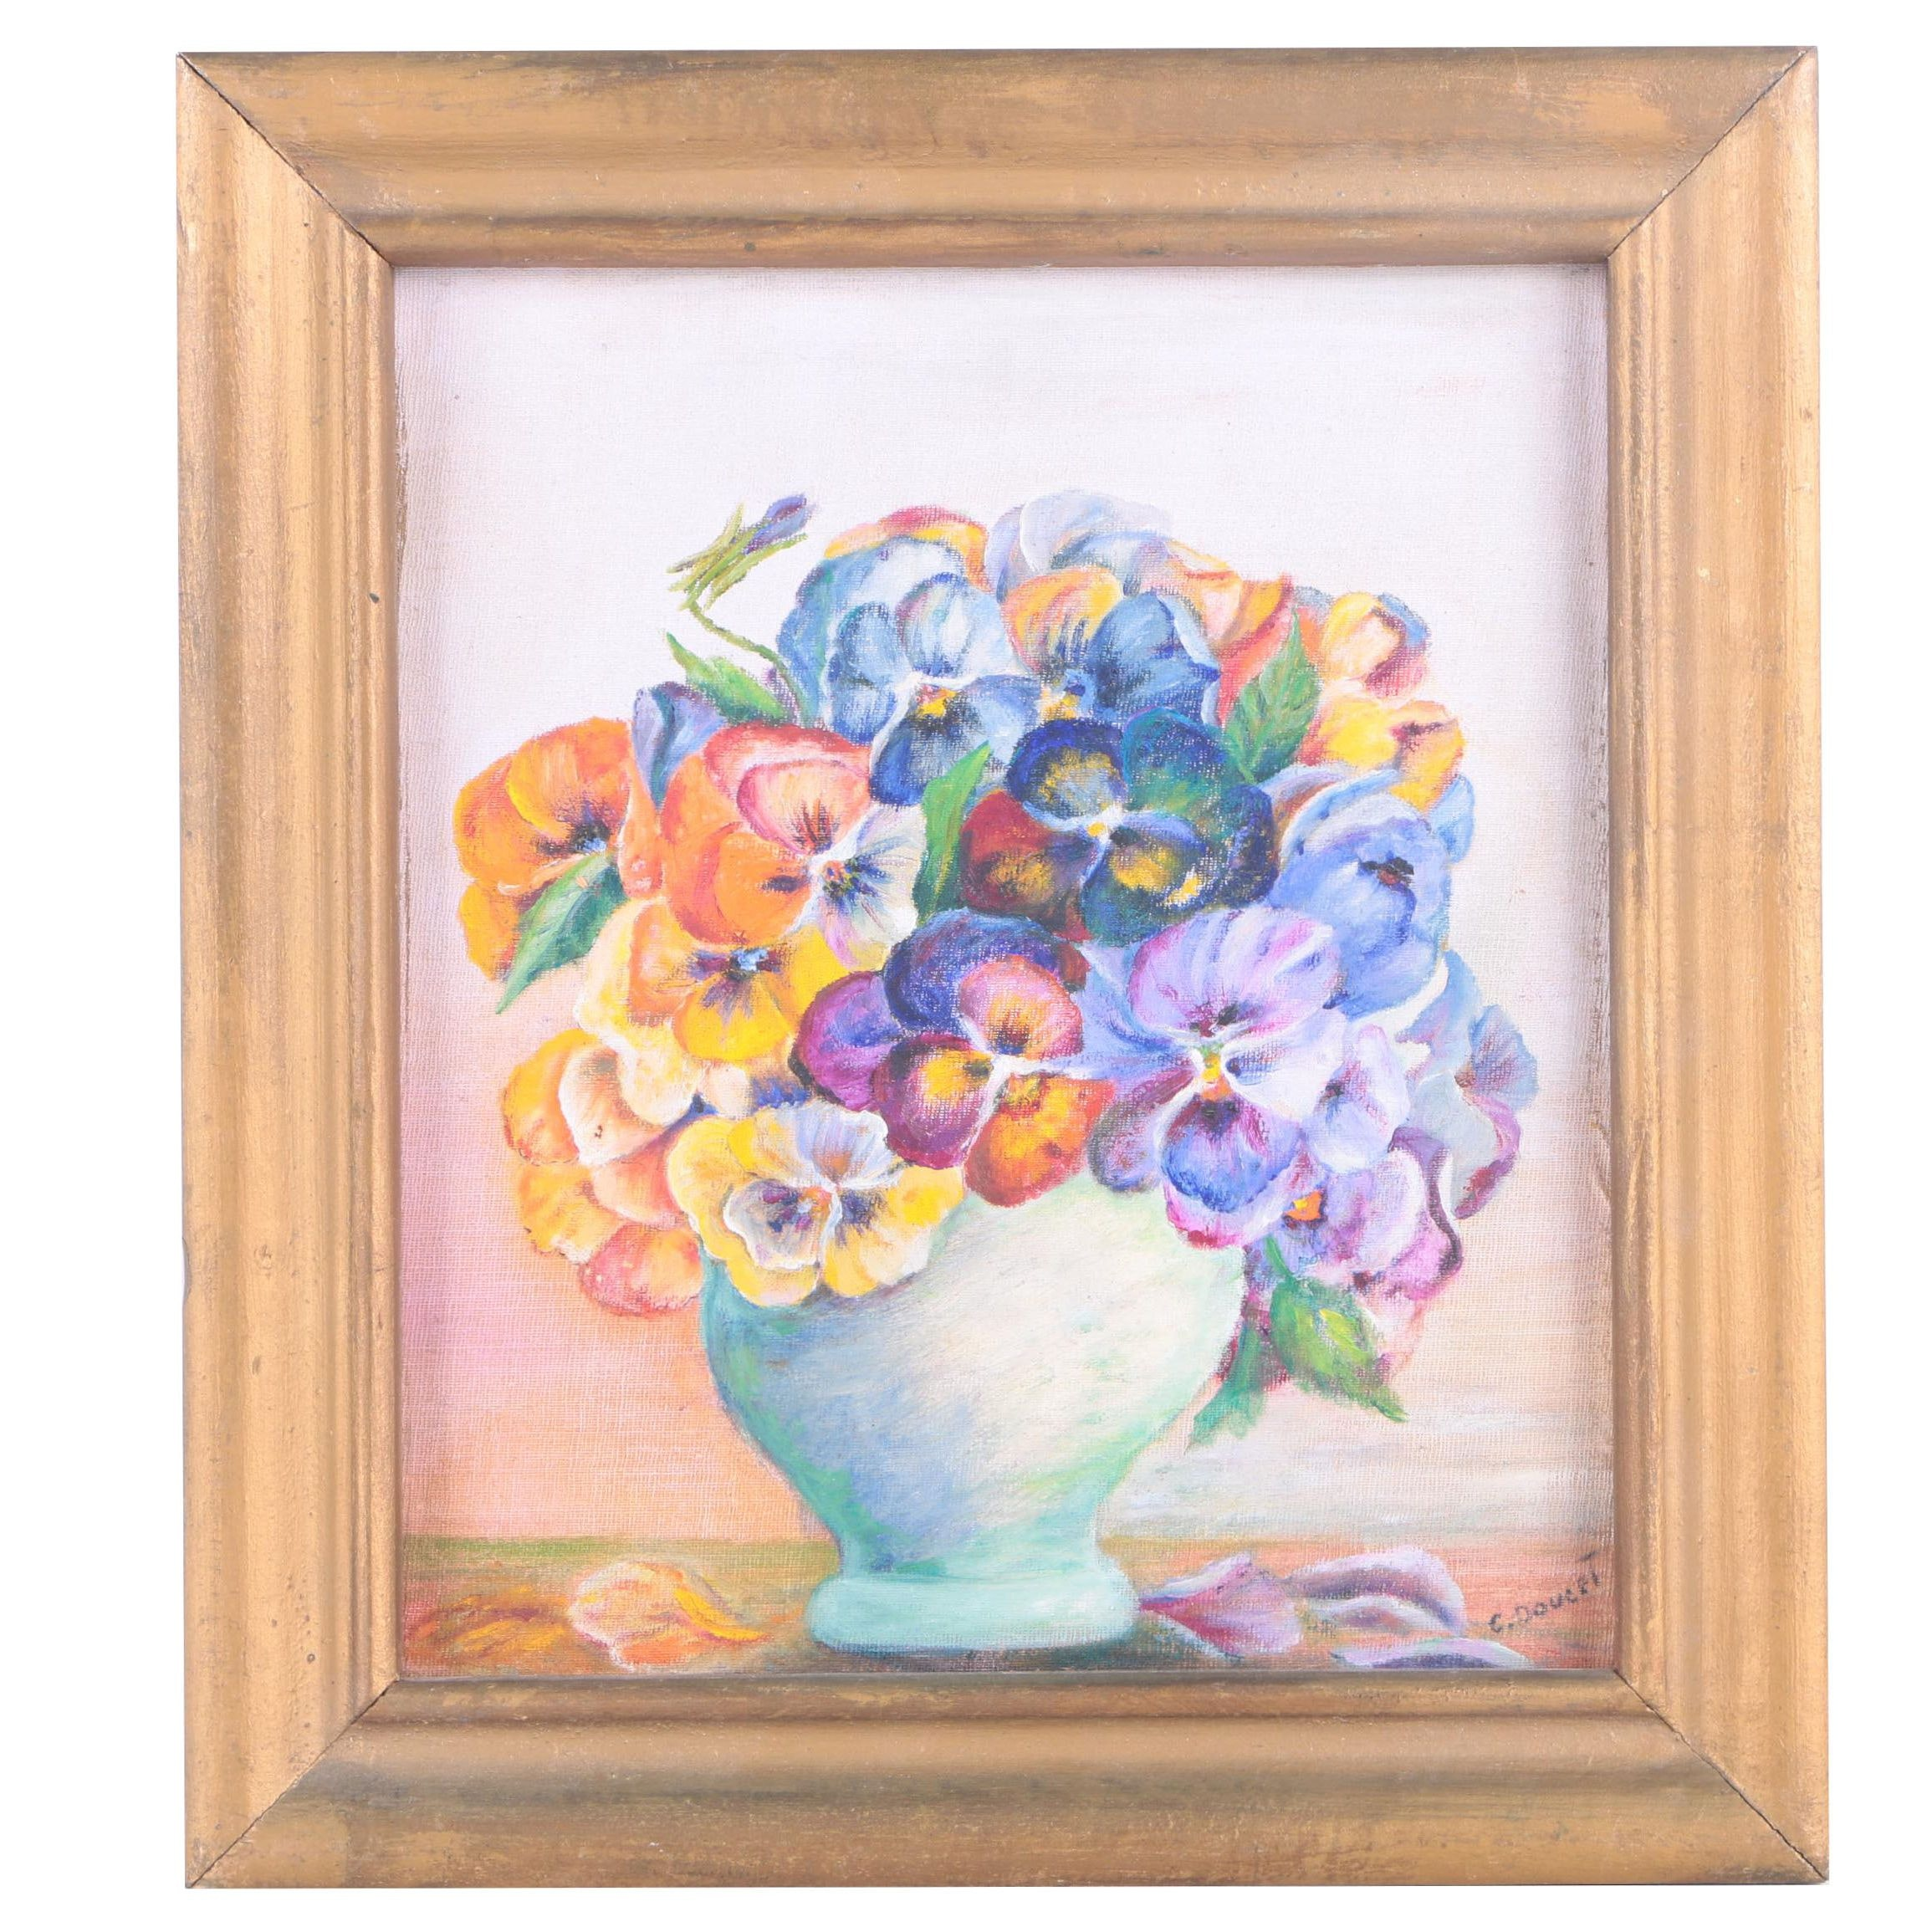 C. Doucet Signed Oil Painting on Canvas of Floral Still Life